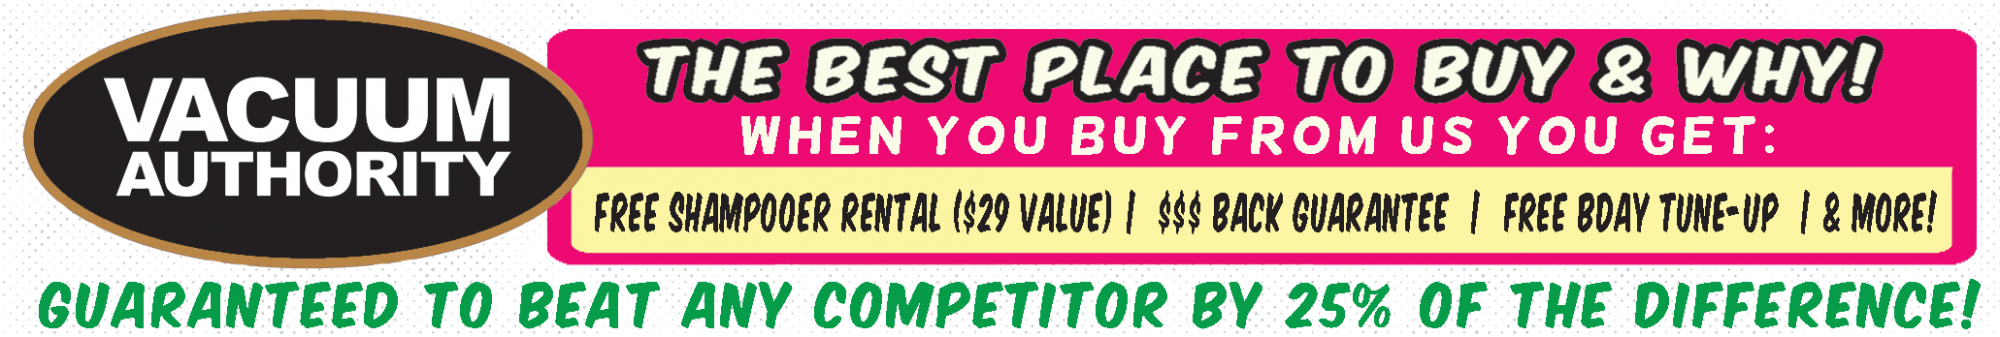 The Best Place to Buy and Reasons Why